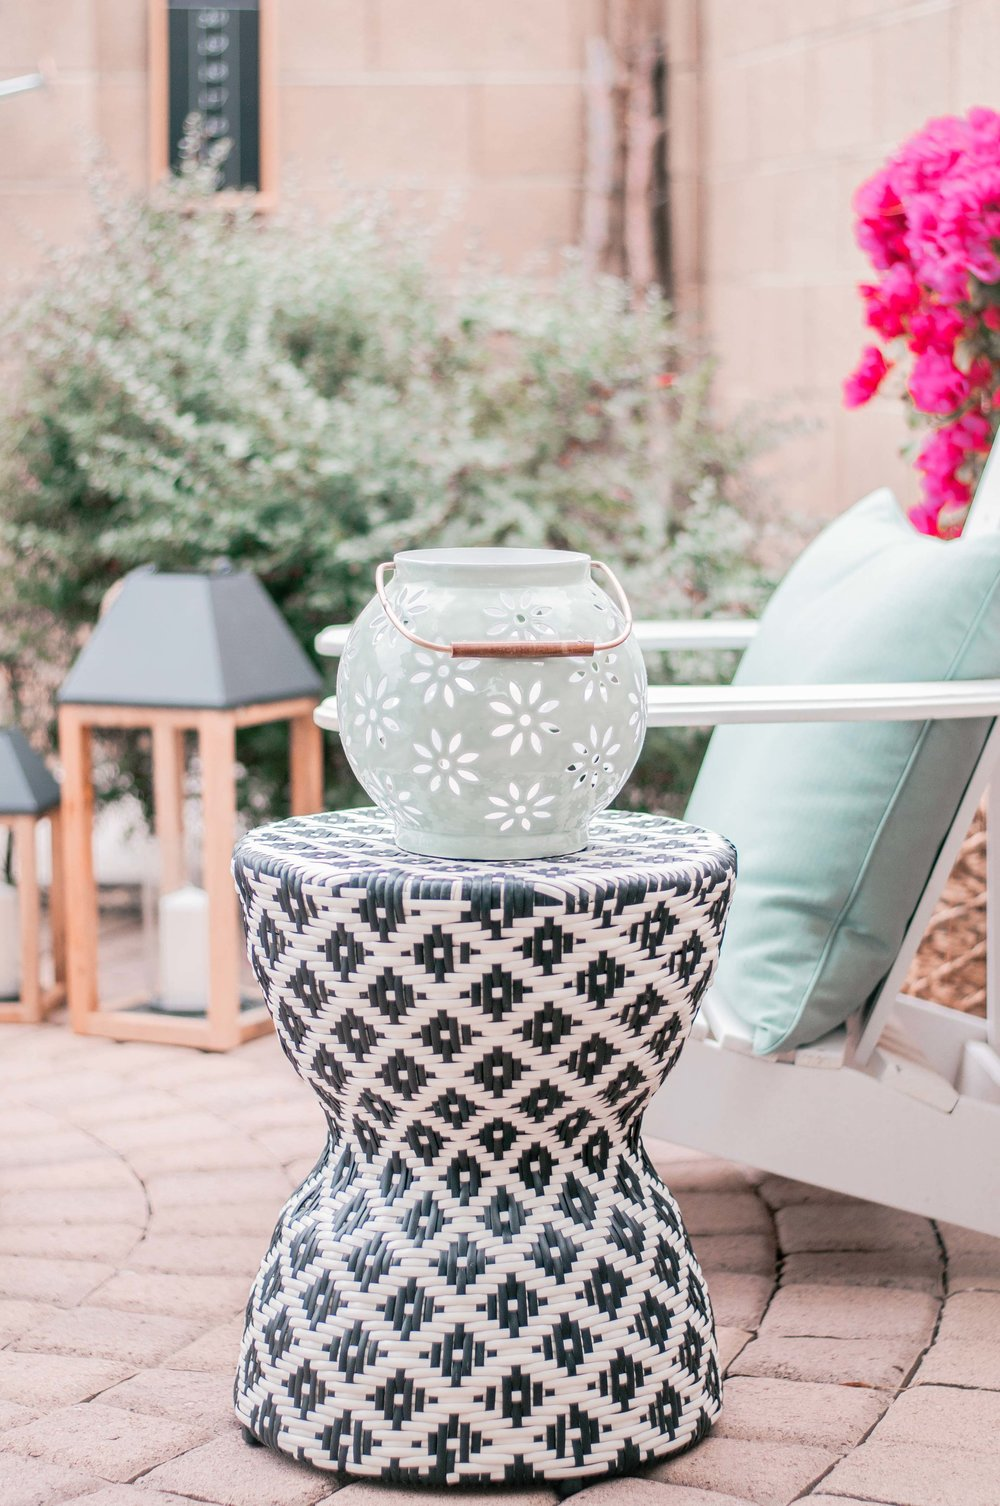 Best Decor Ideas for a Fire Pit on a Patio